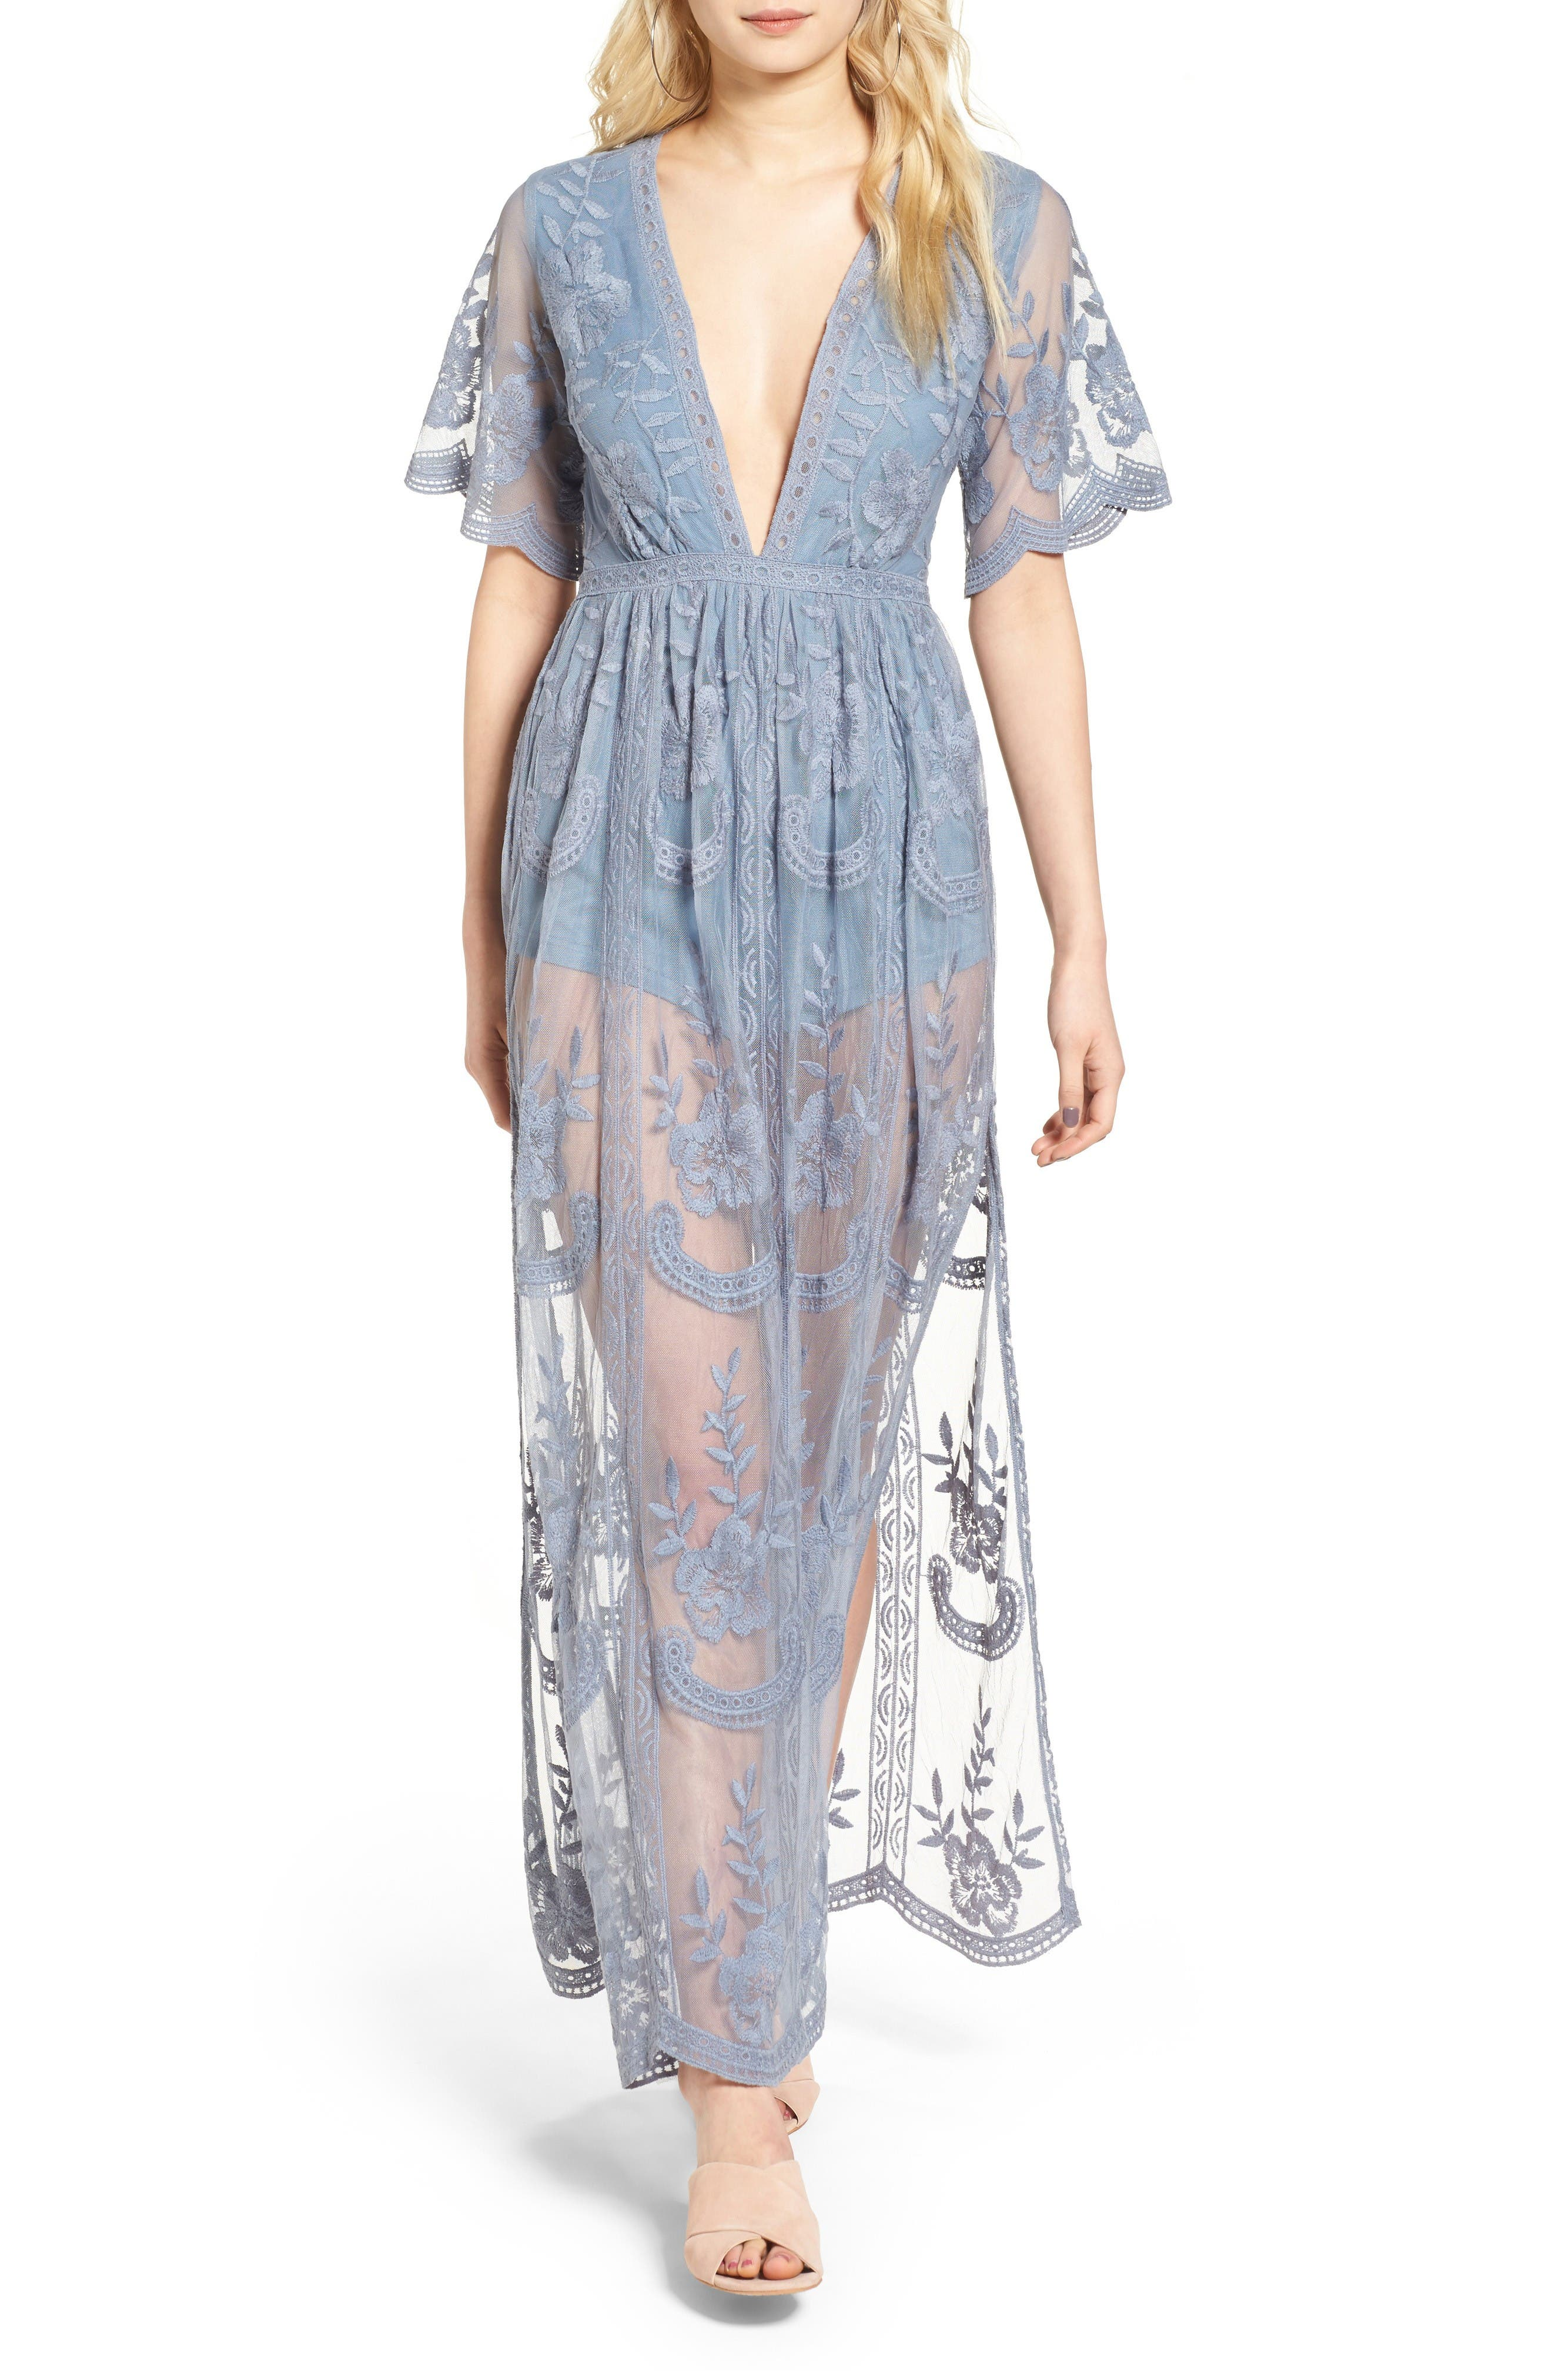 Main Image - Socialite Lace Overlay Romper